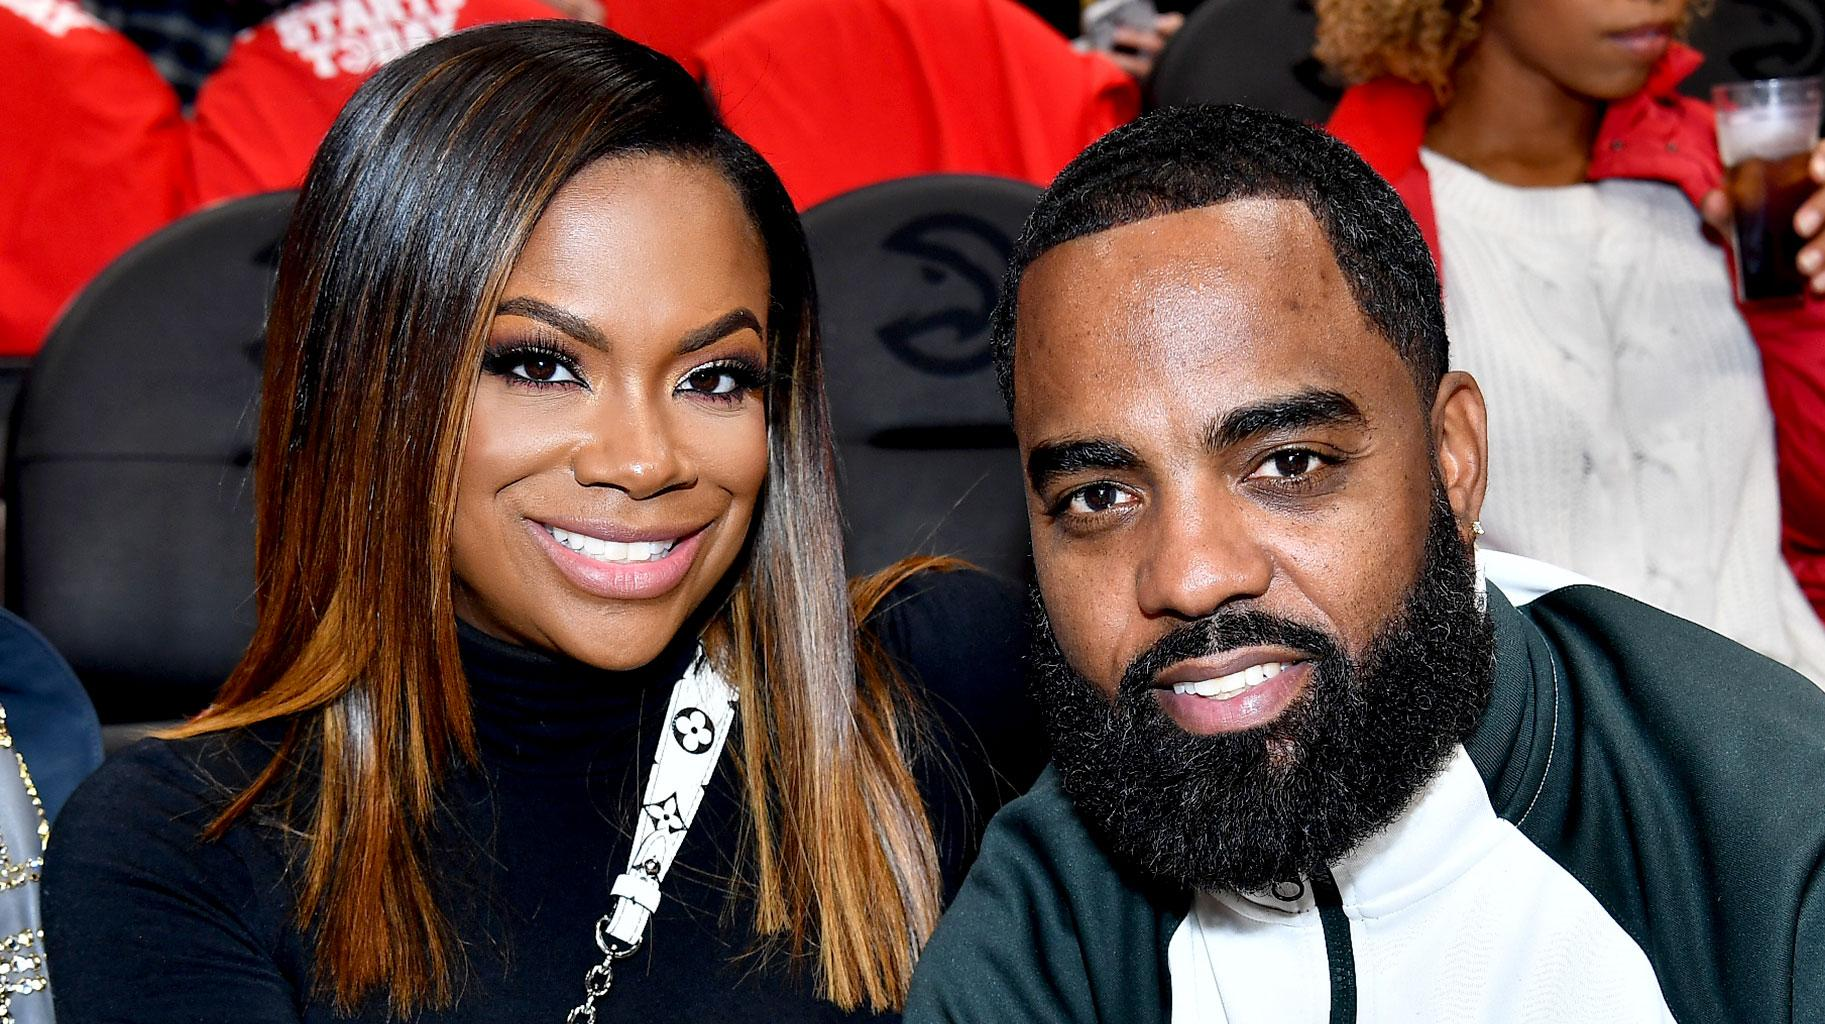 Kandi Burruss And Todd Tucker Celebrate An Important Person